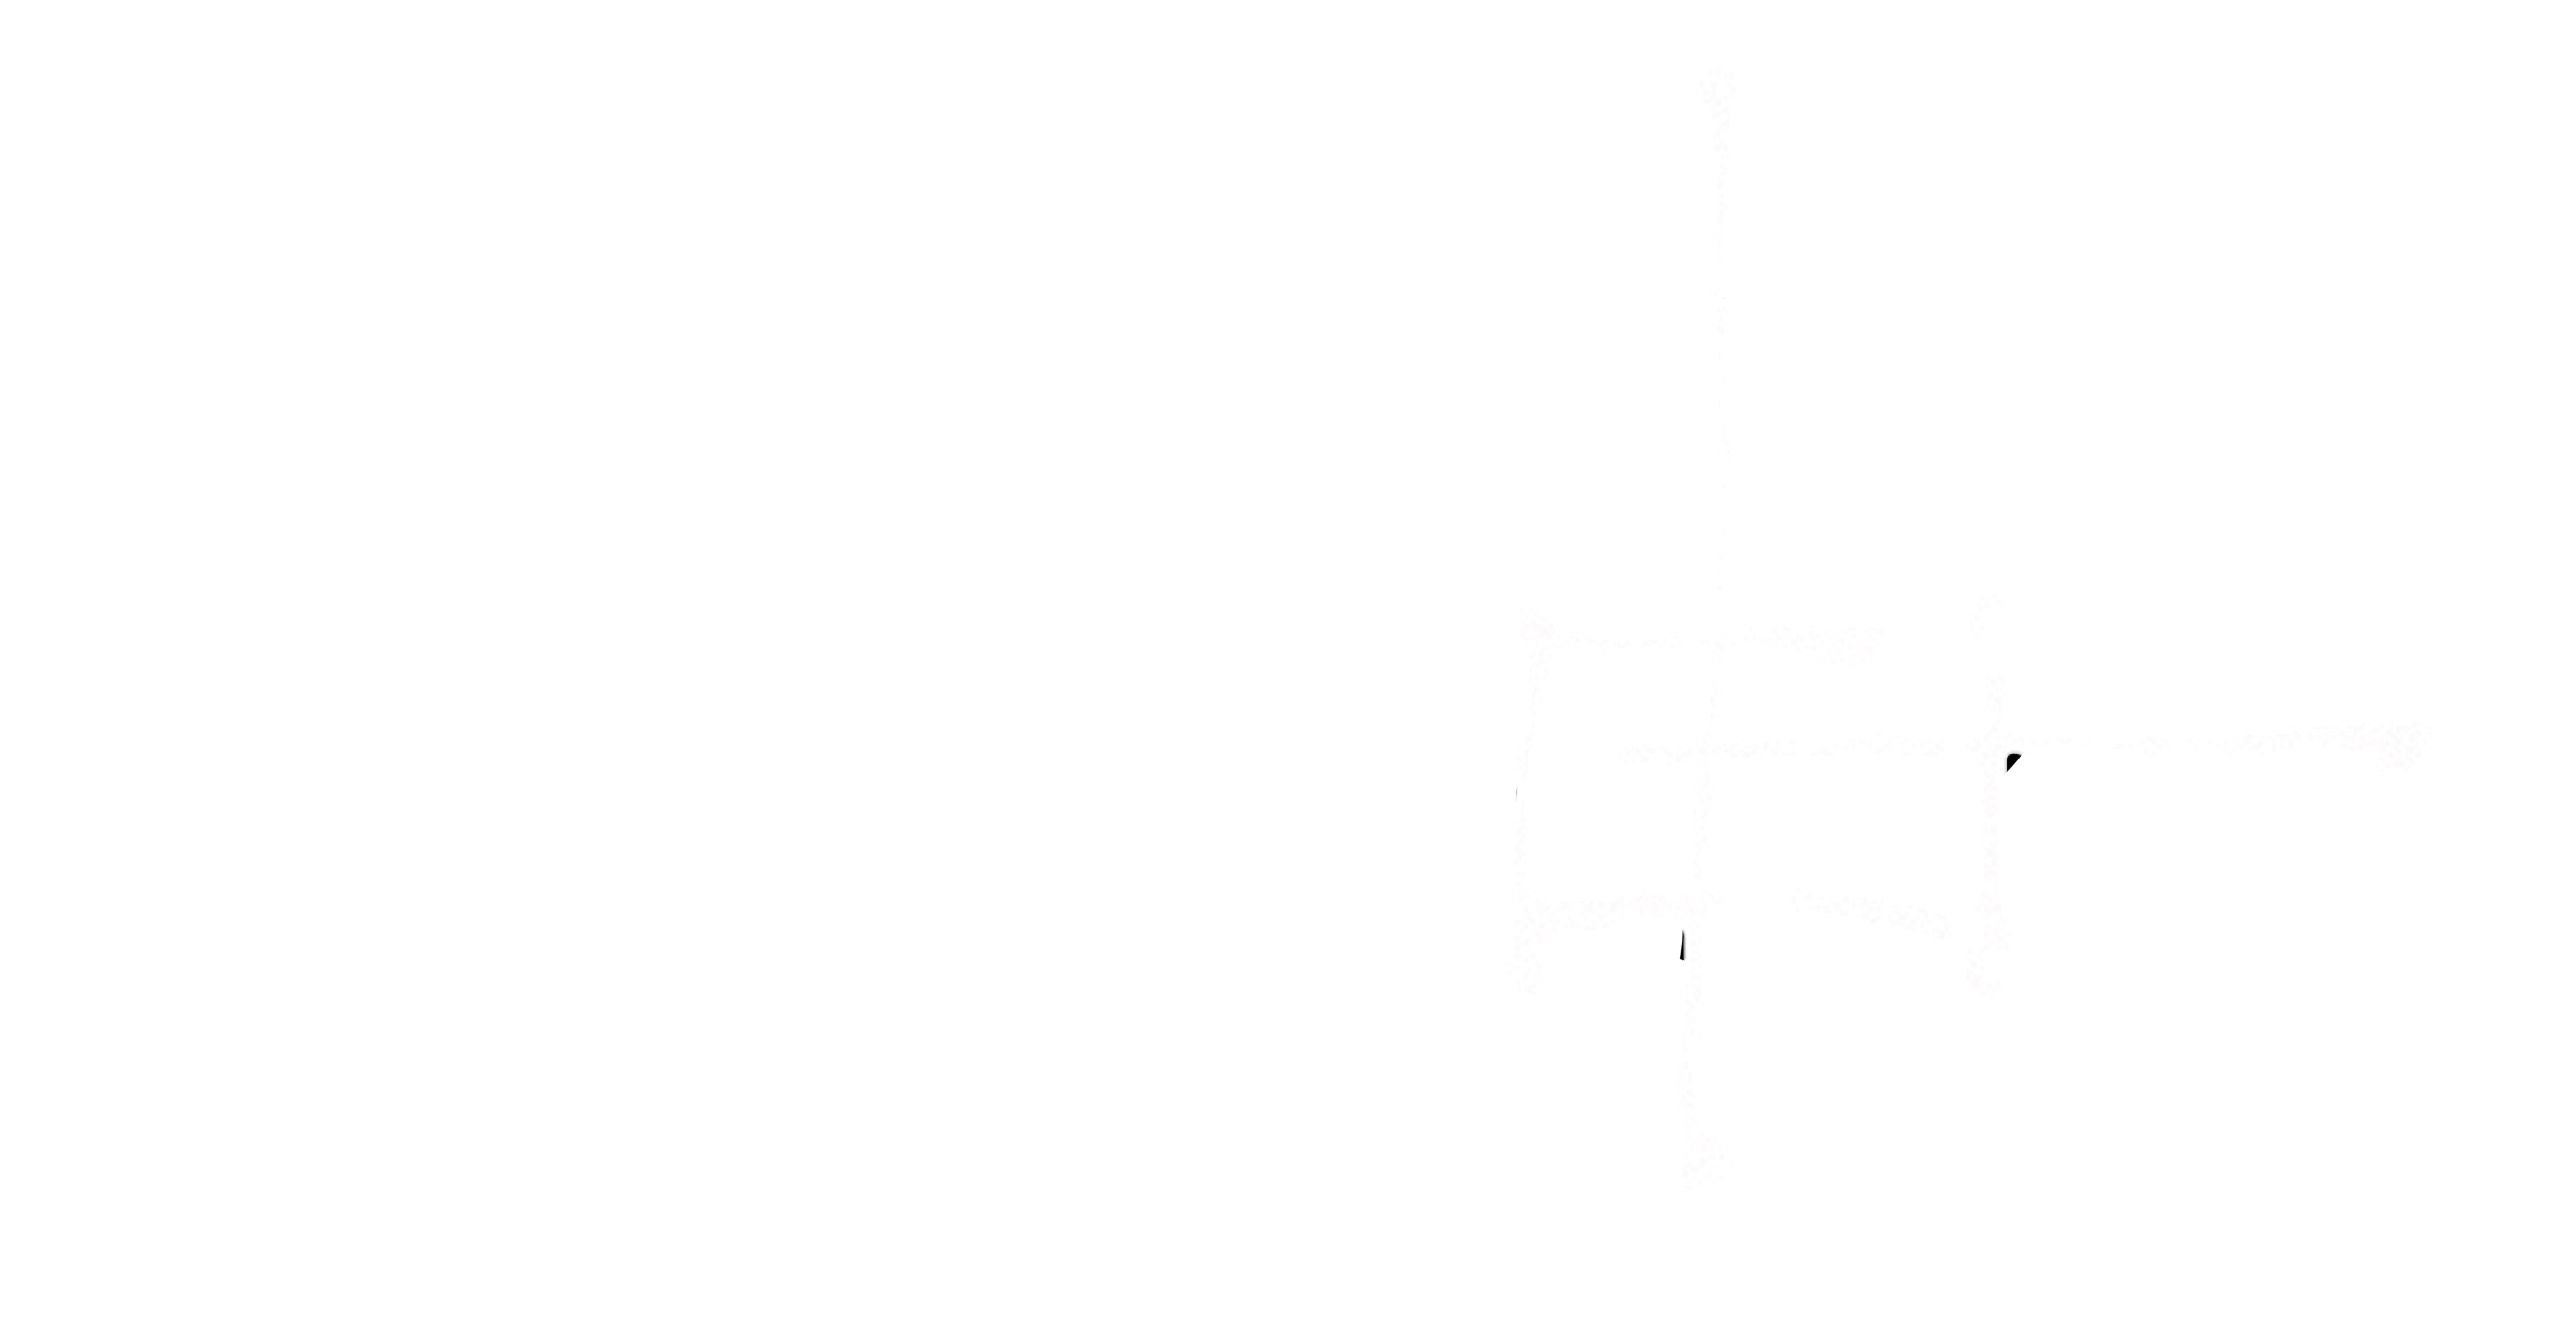 ajc architects